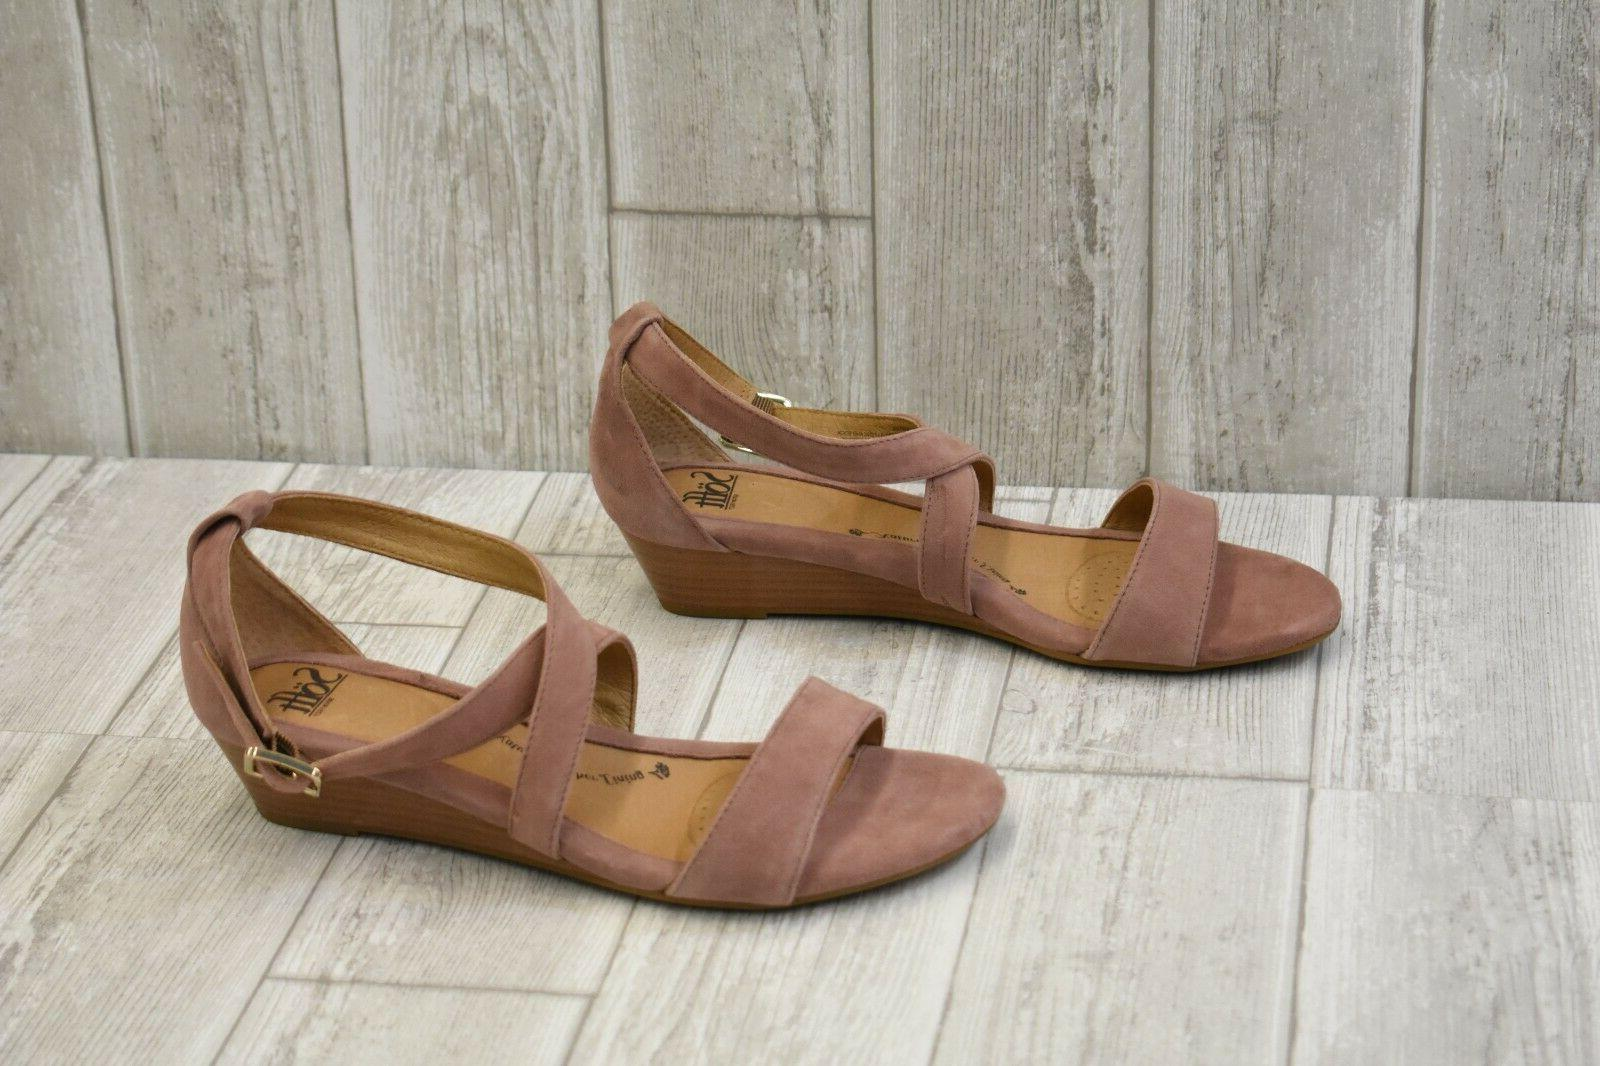 Sofft Innis Wedge Sandals, Women's Size 10W, Mulberry NEW